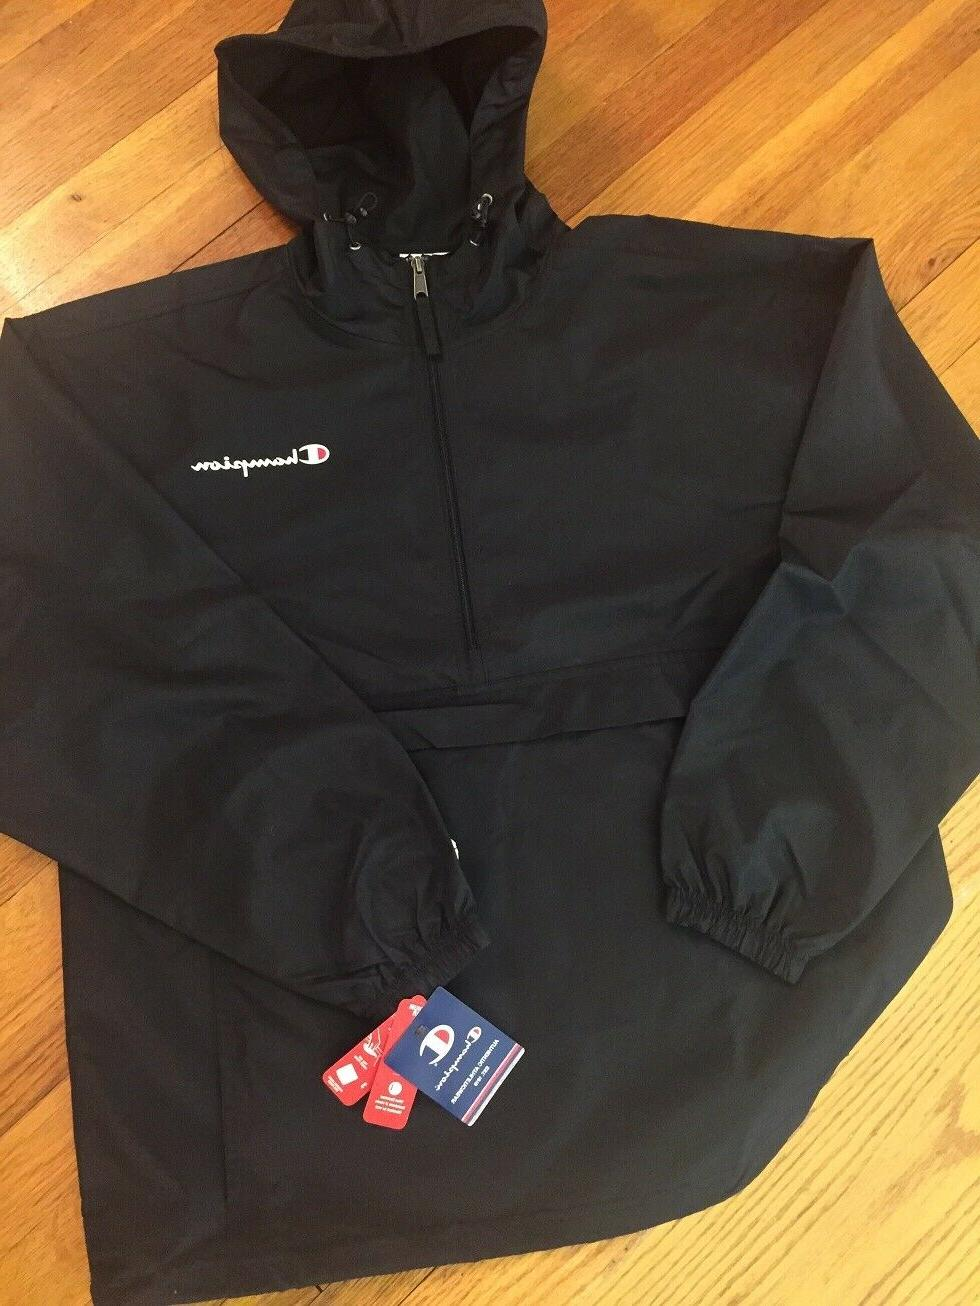 new w tag mens jacket hooded anorak